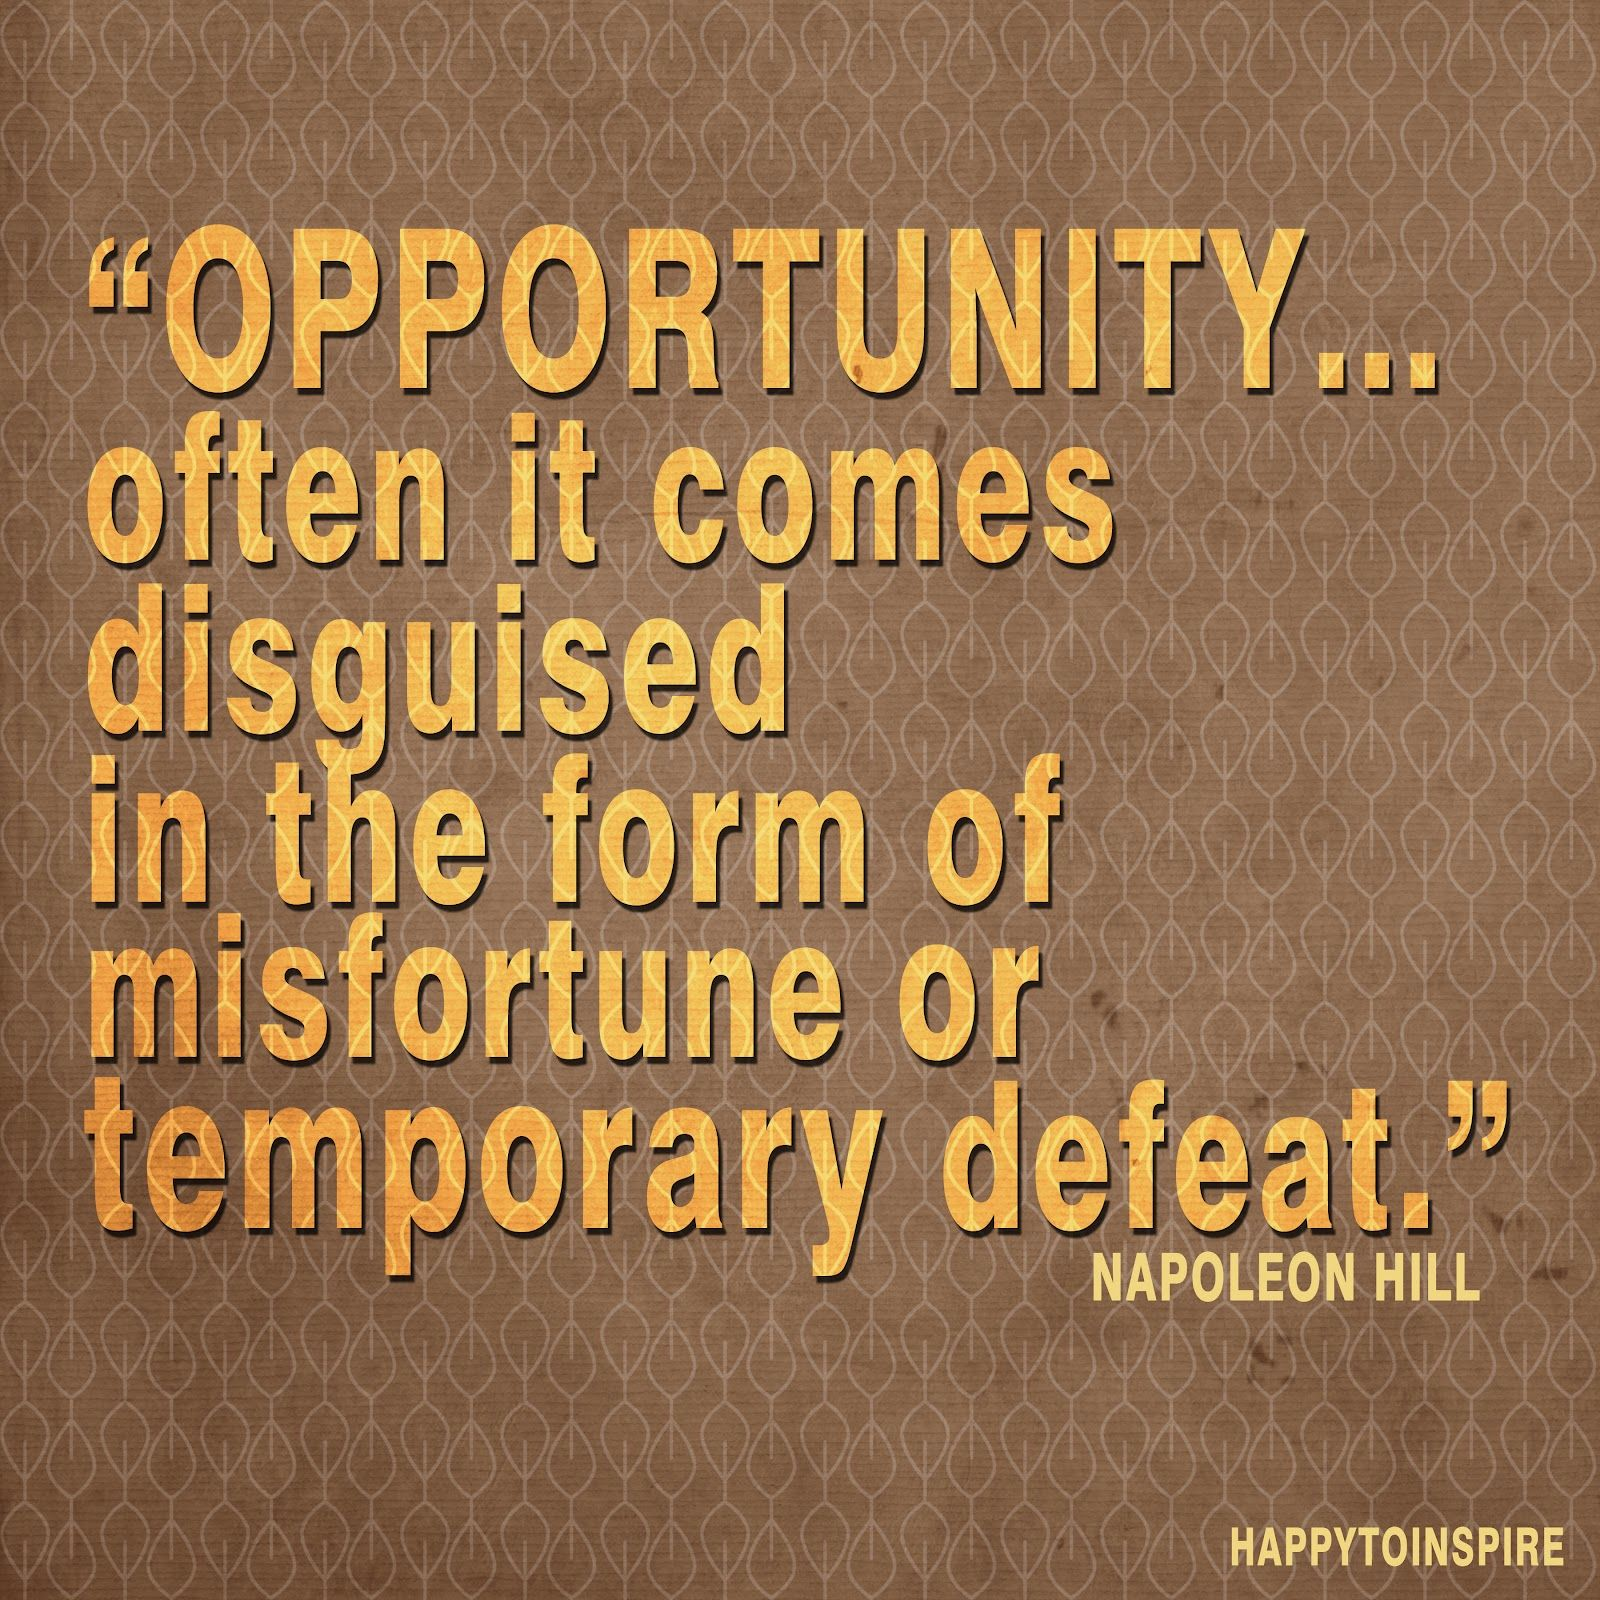 seize opportunities! don't let an obstacle stop you from moving forward